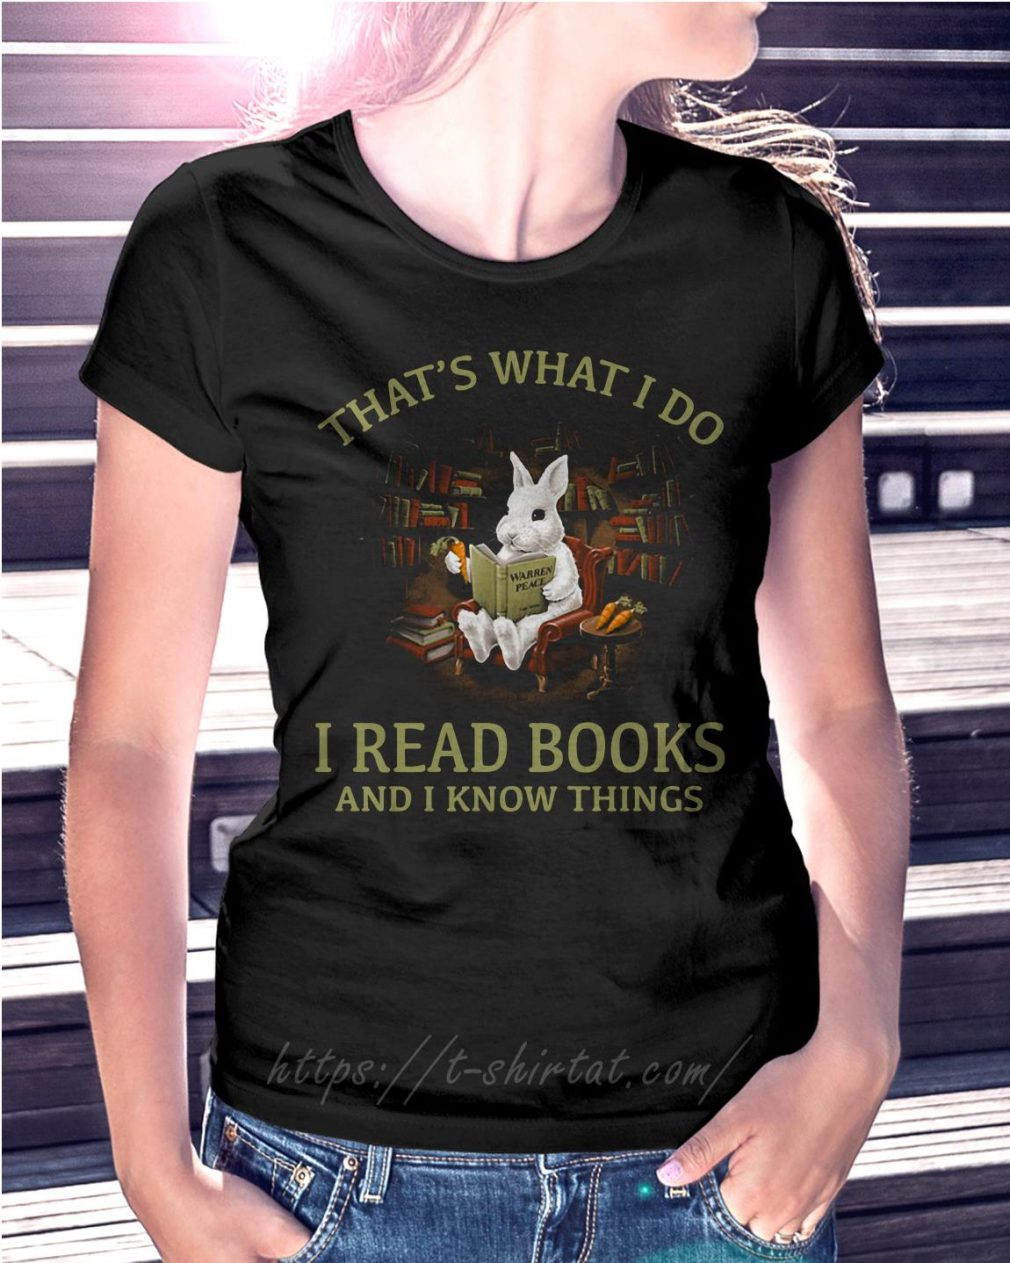 Rabbit that's what I do I read books and I know things T-shirt